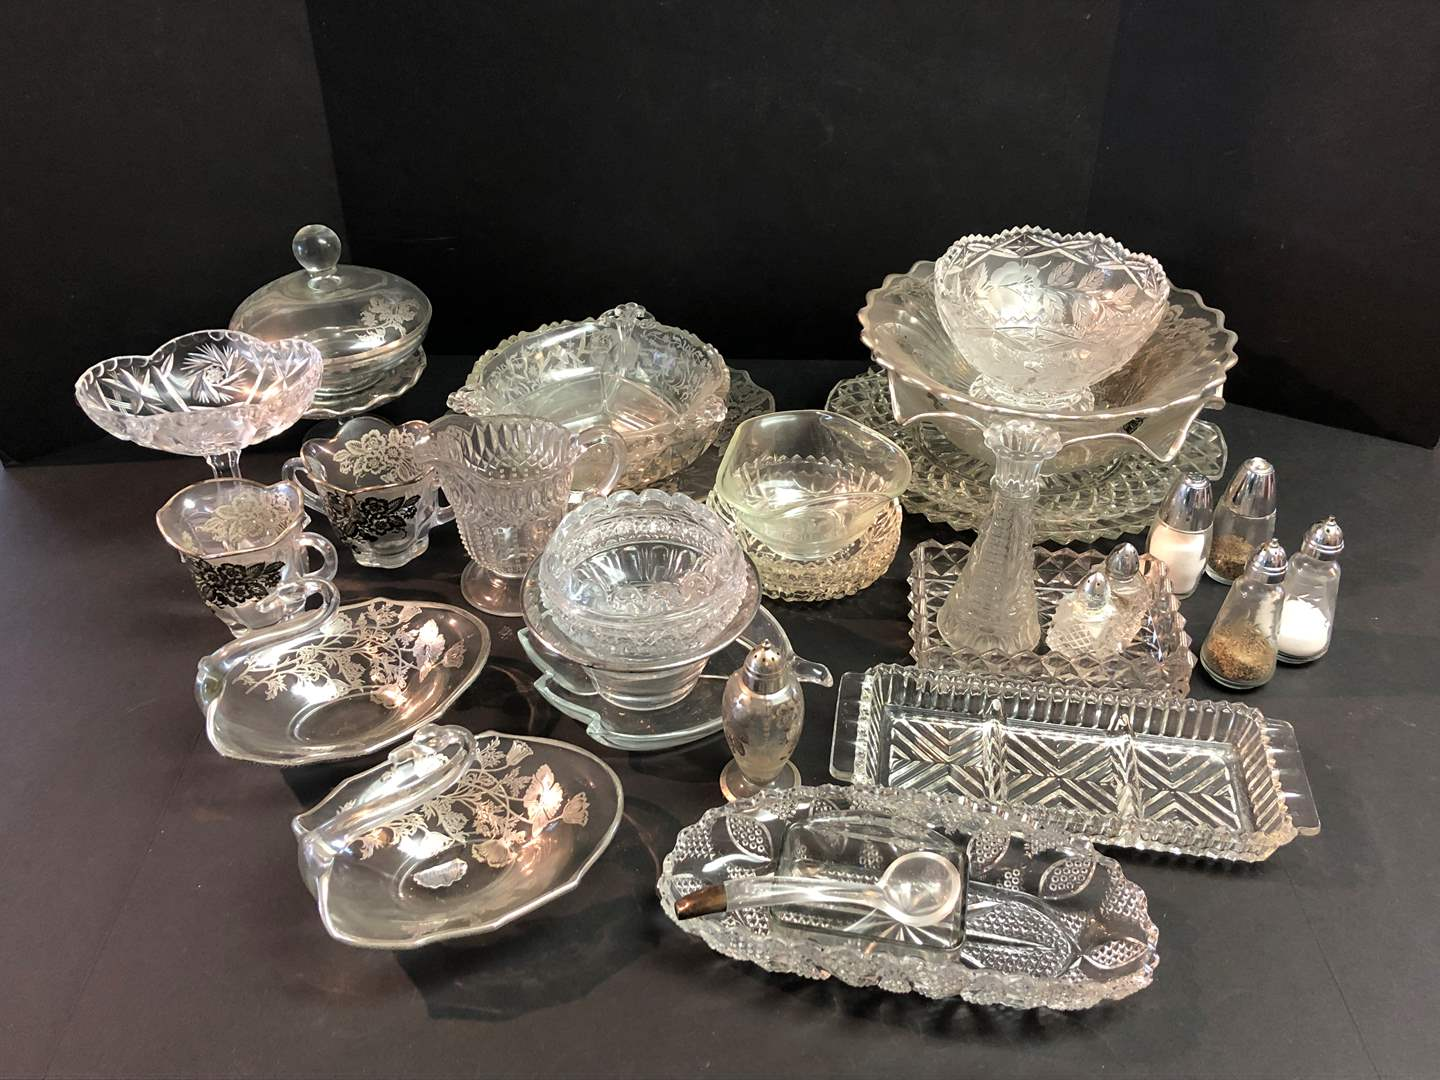 Lot # 56 - Crystal Items: Serving Dishes, Salt & Pepper, Candy Dishes & More.. (main image)